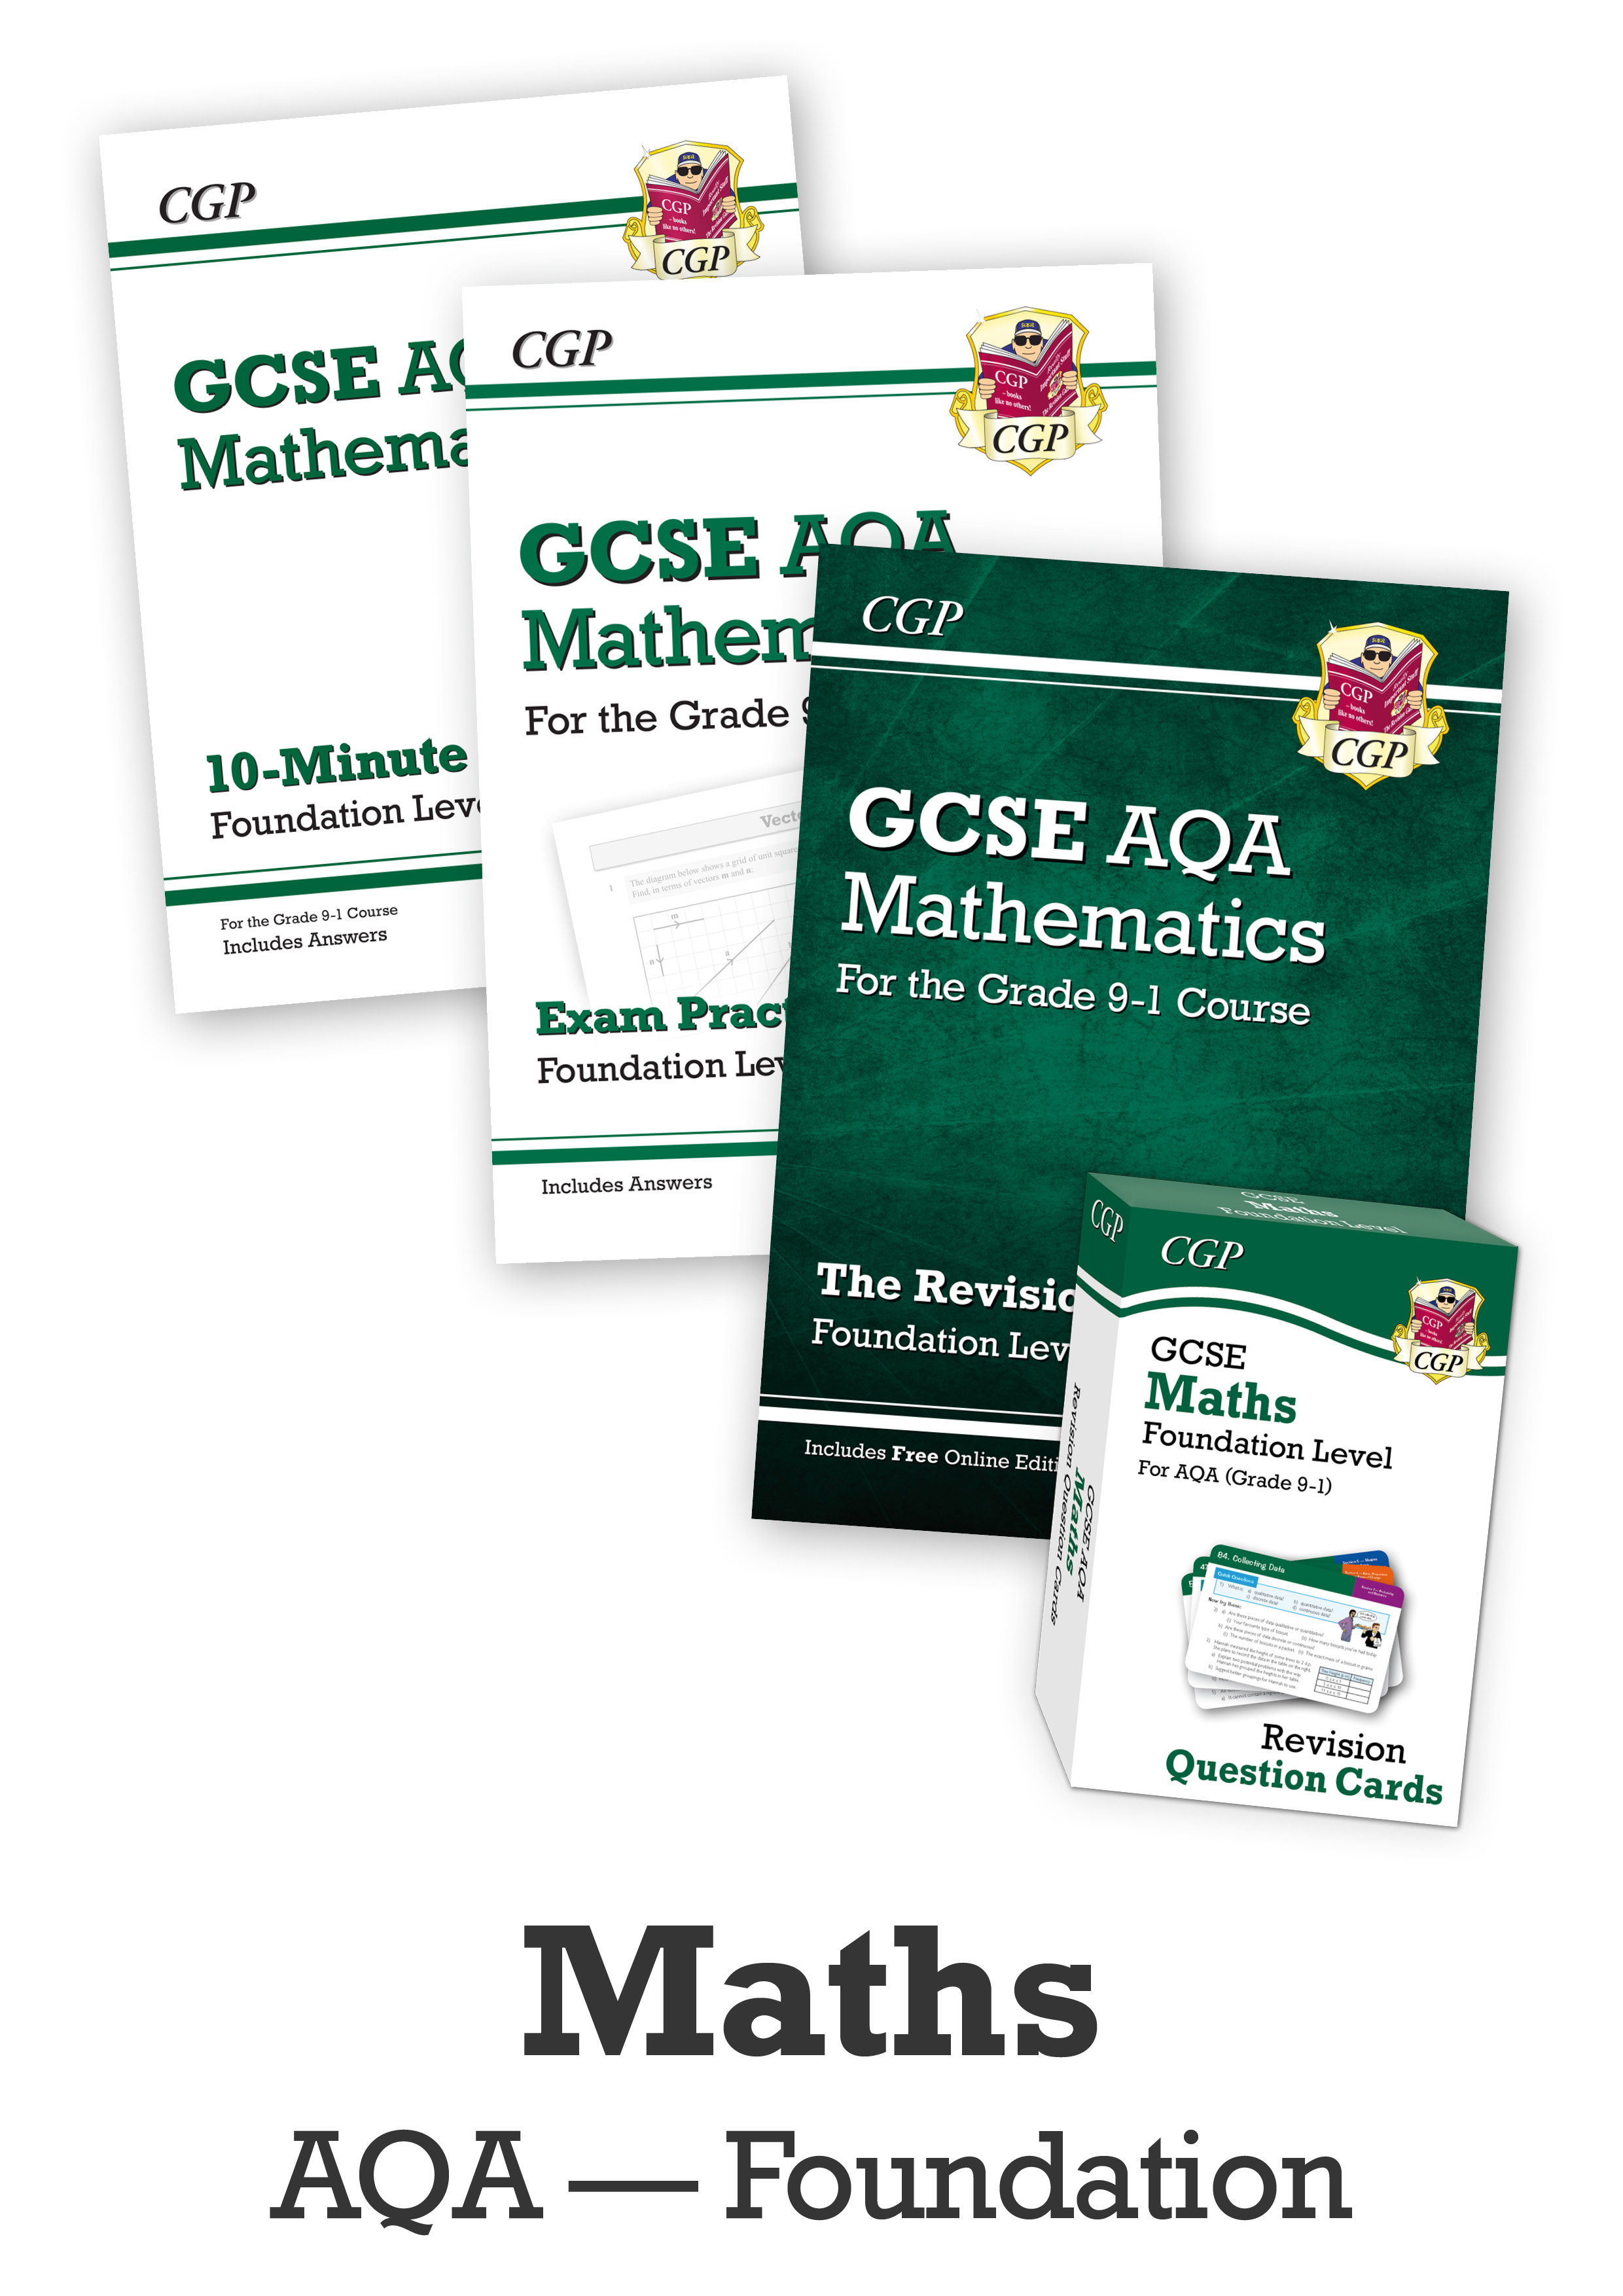 MQFCUB41 - GCSE Catch-Up Revision Essentials Bundle: AQA Maths Foundation